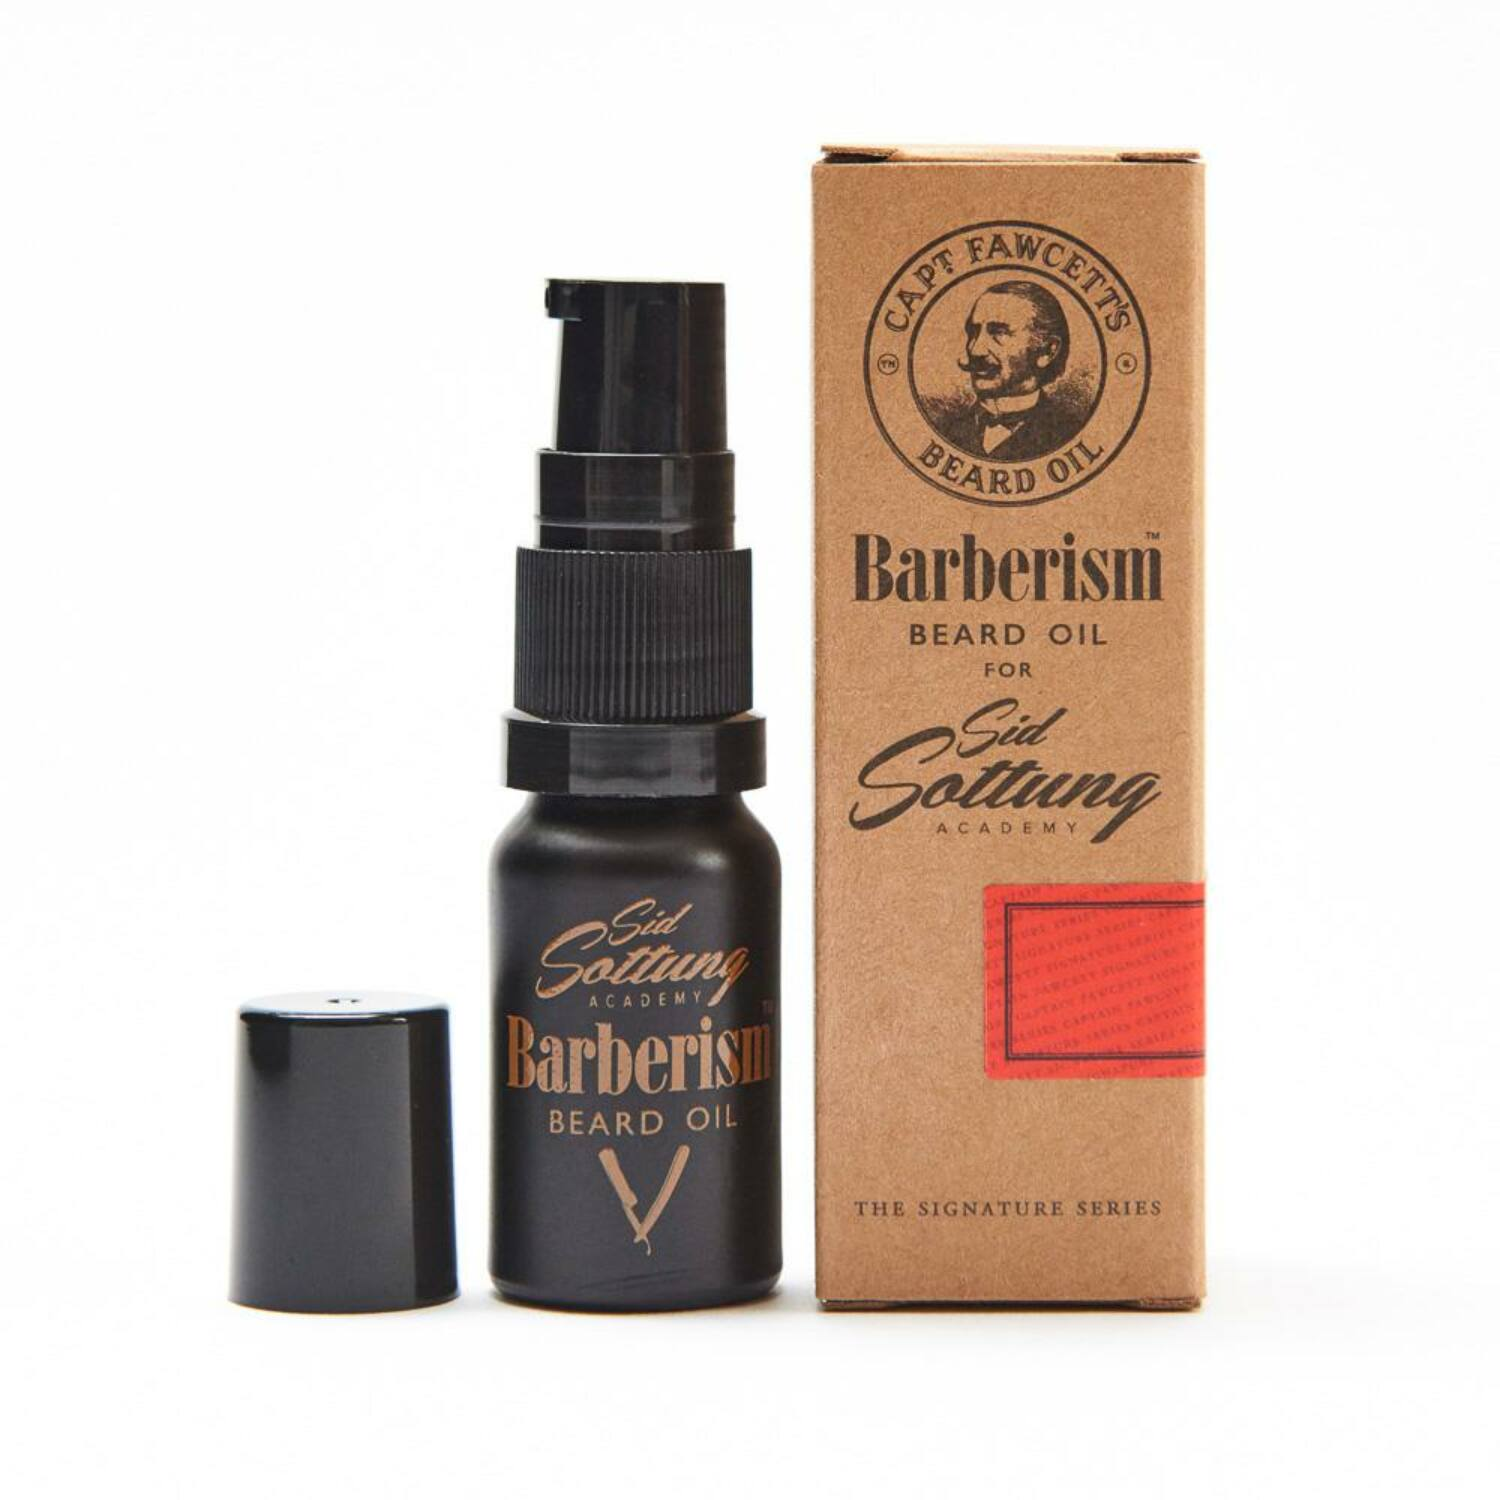 Captain Fawcett Barberism szakállolaj 10ml